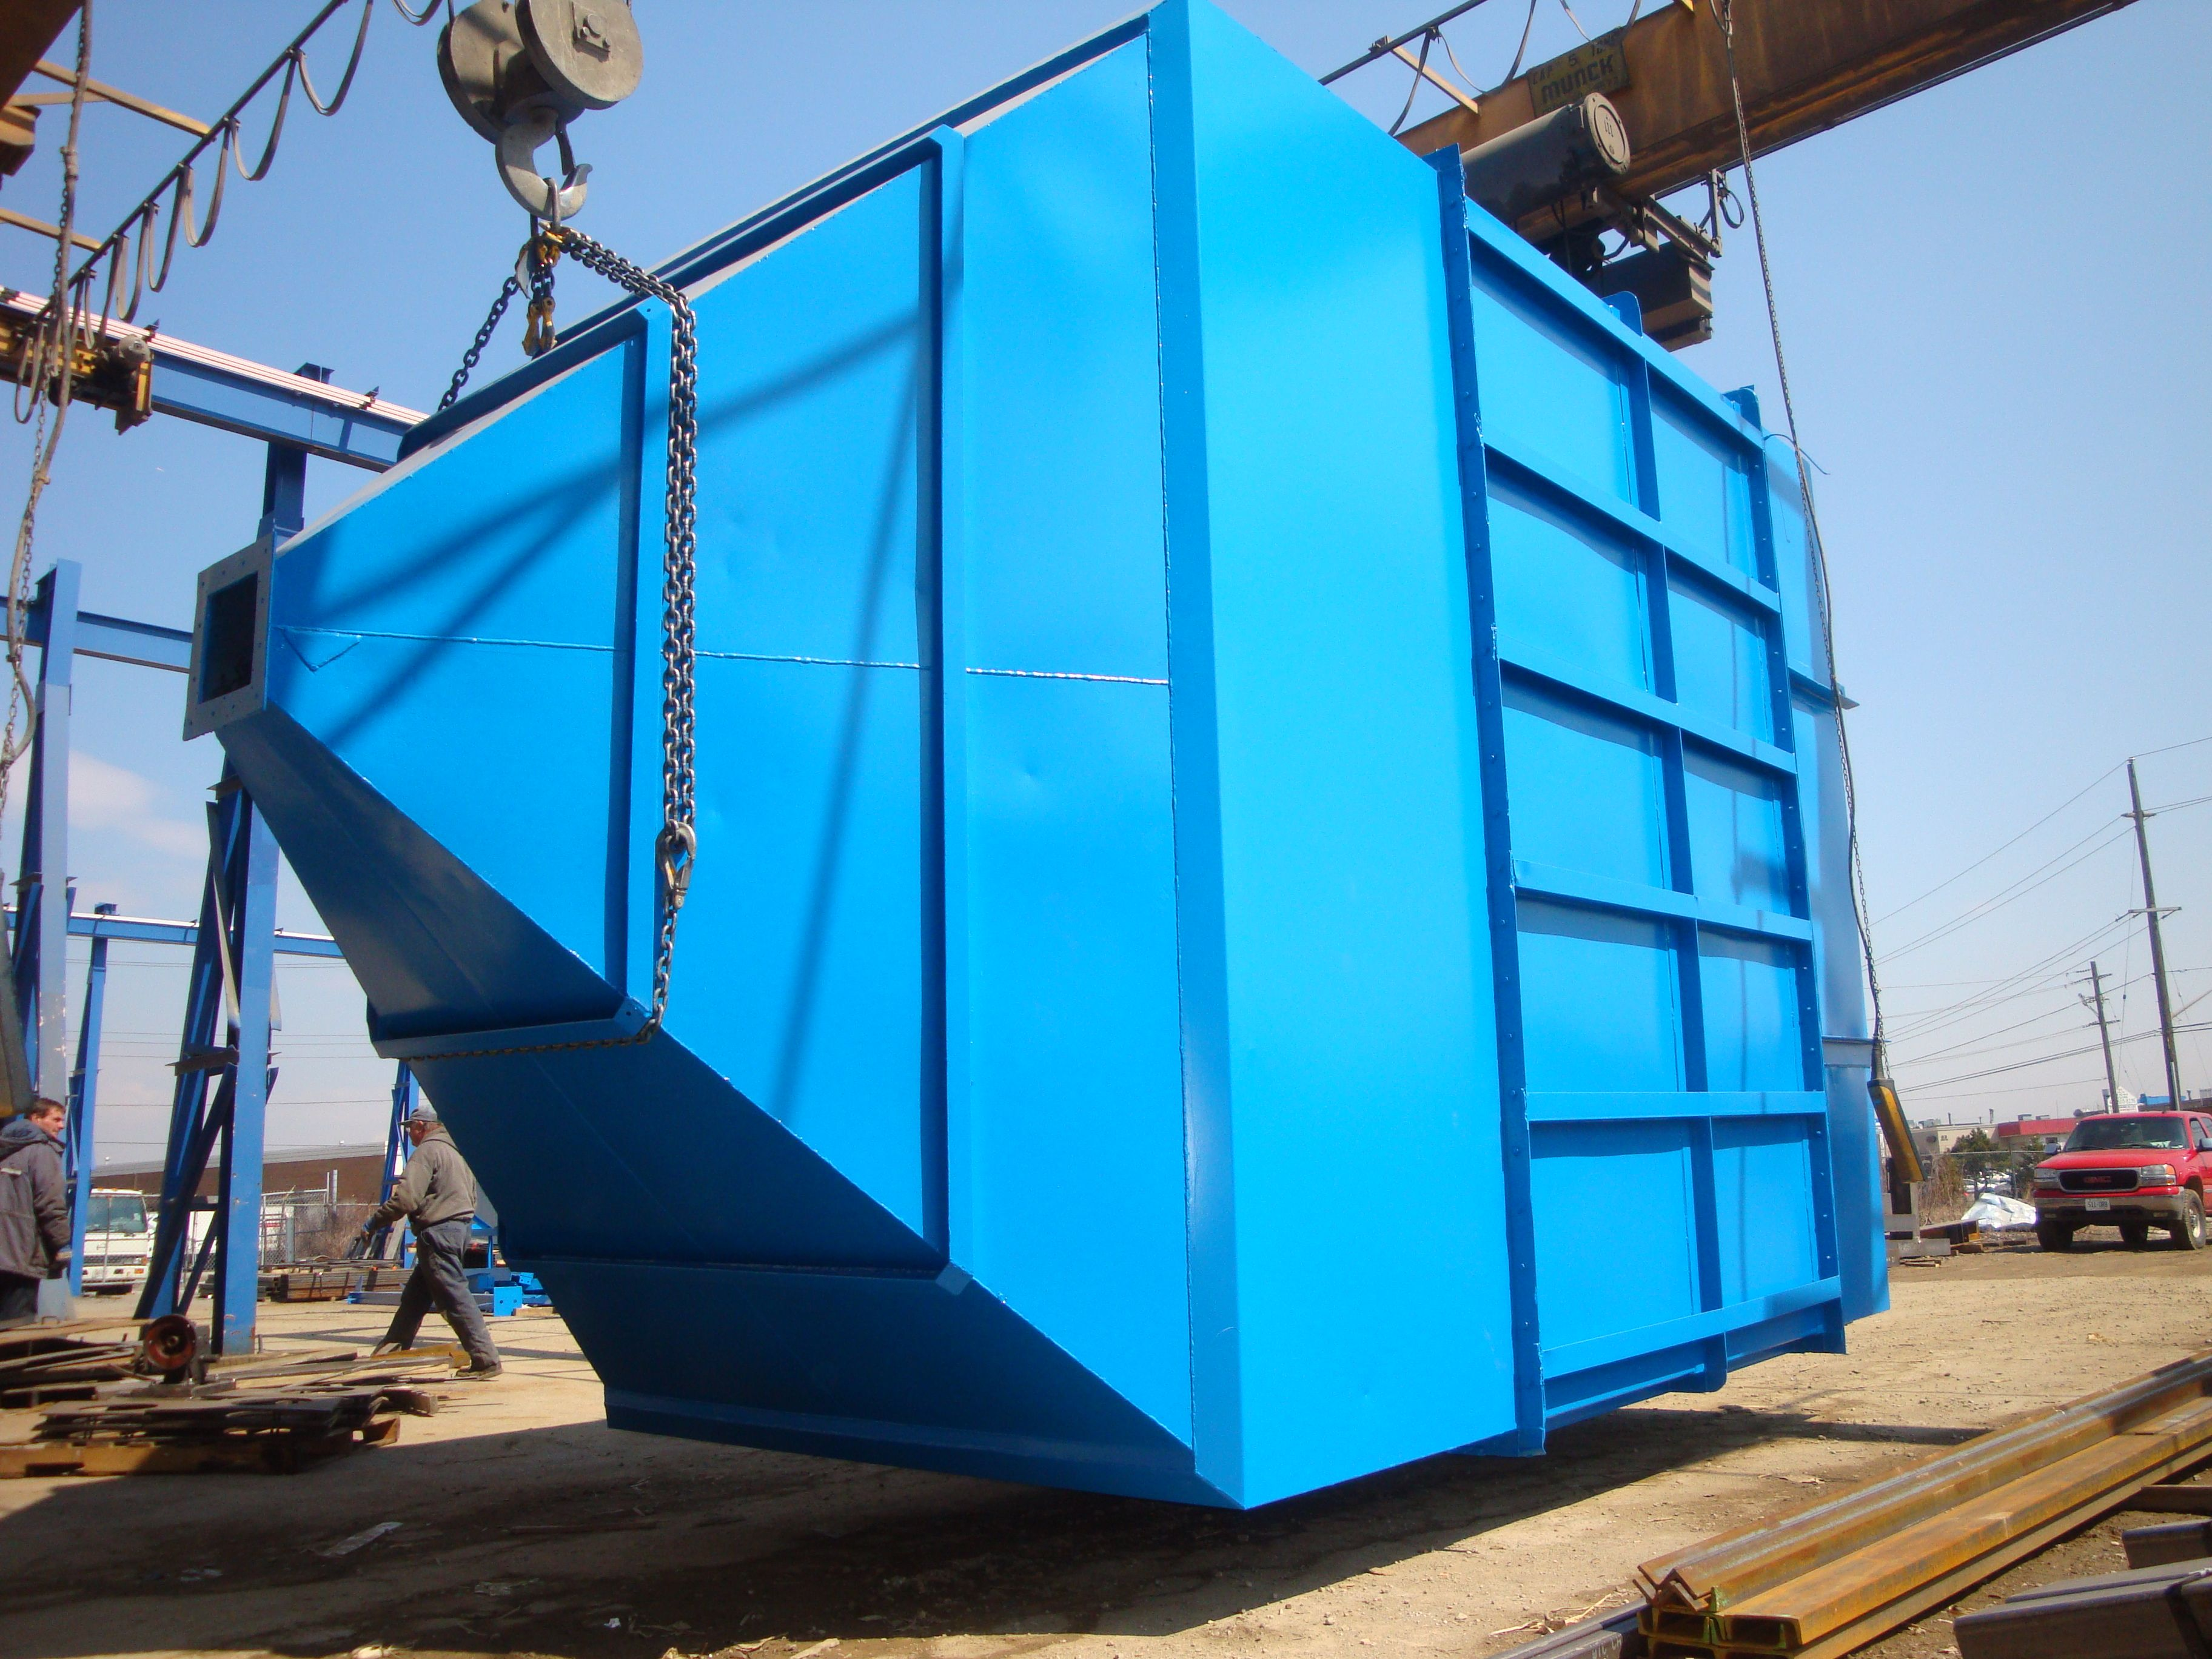 Dust collector and industrial dust collectors are